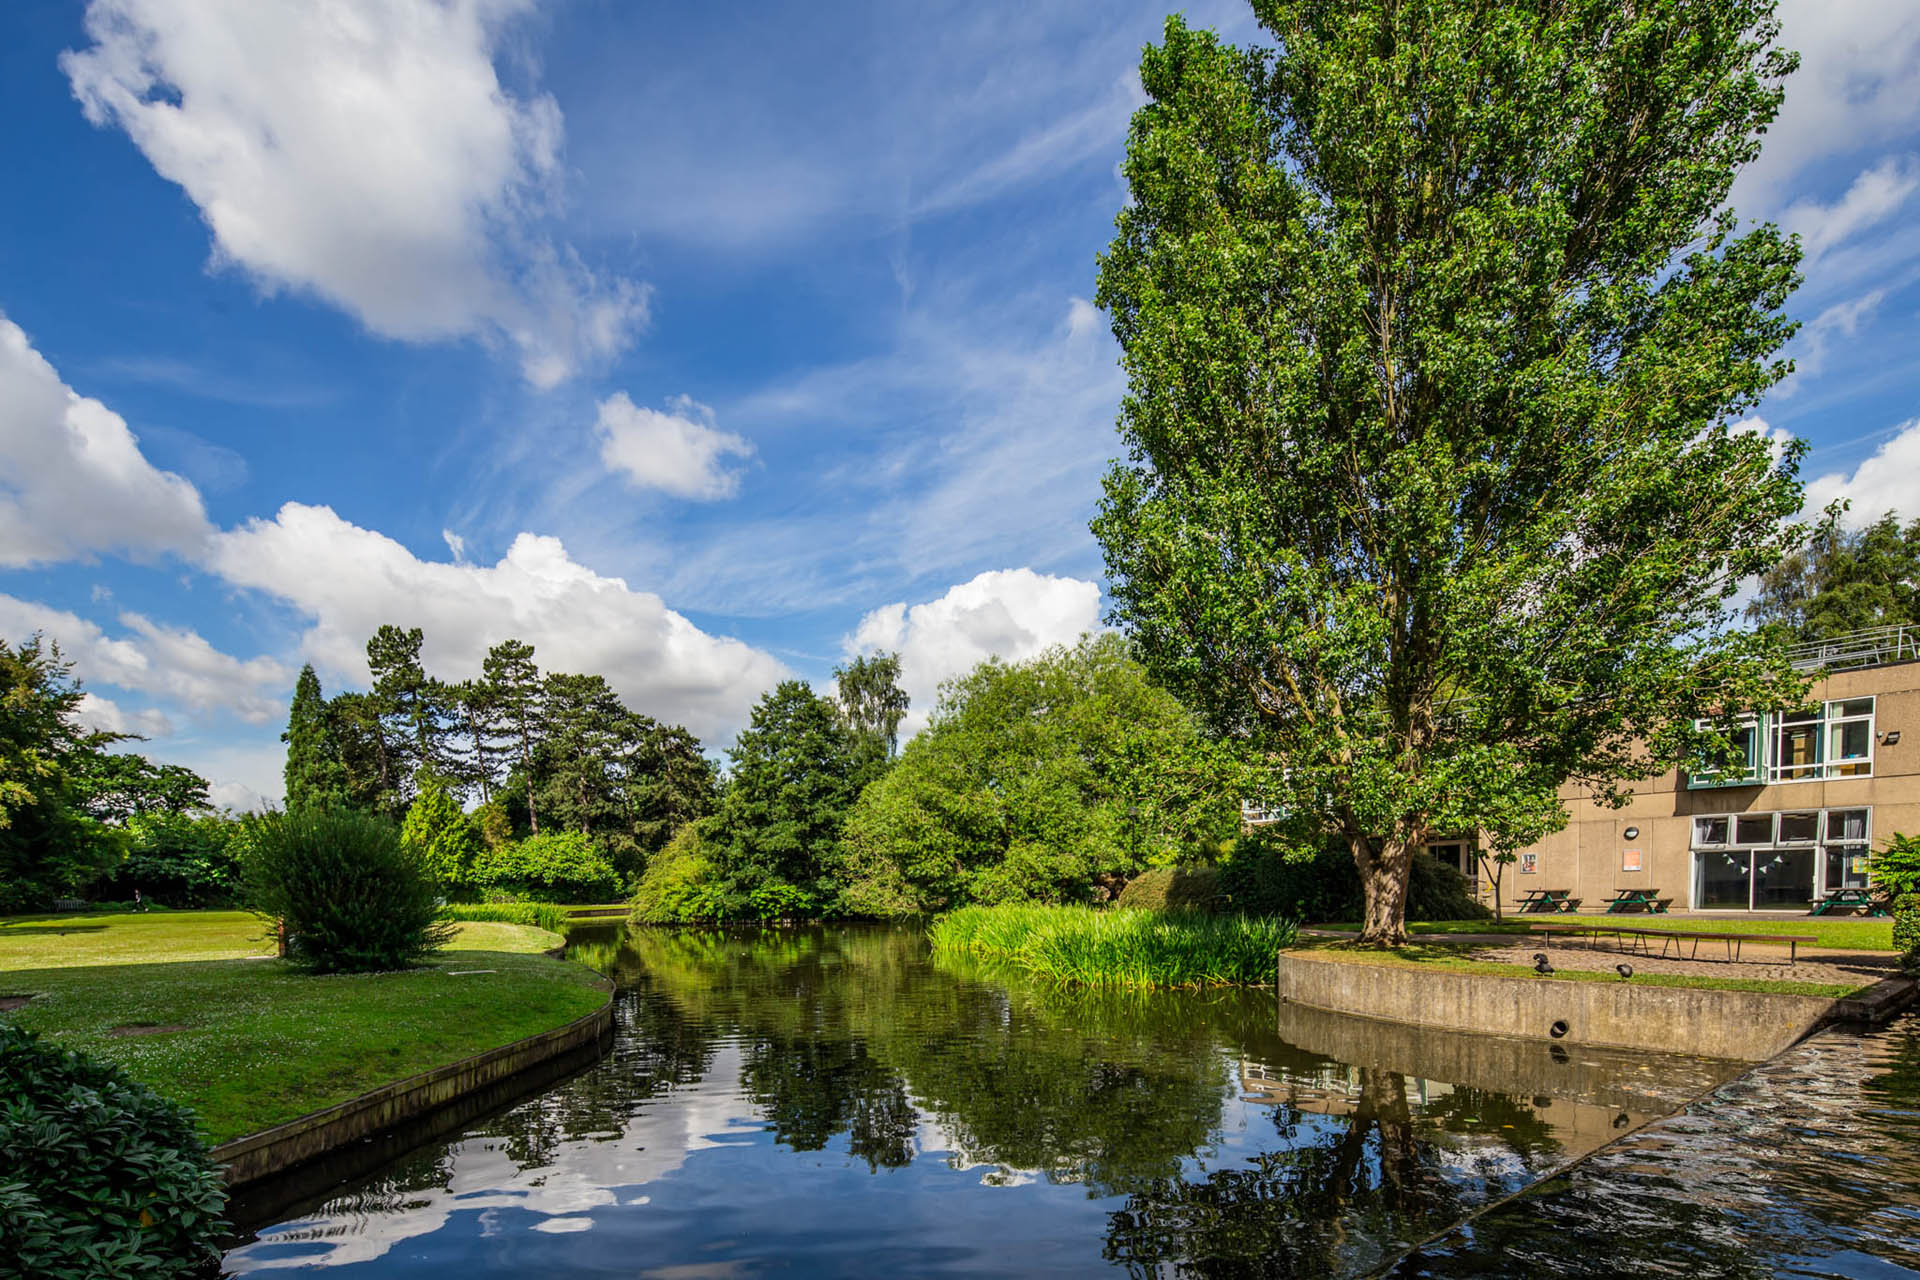 An image of the University of York's West campus with a lake and trees.